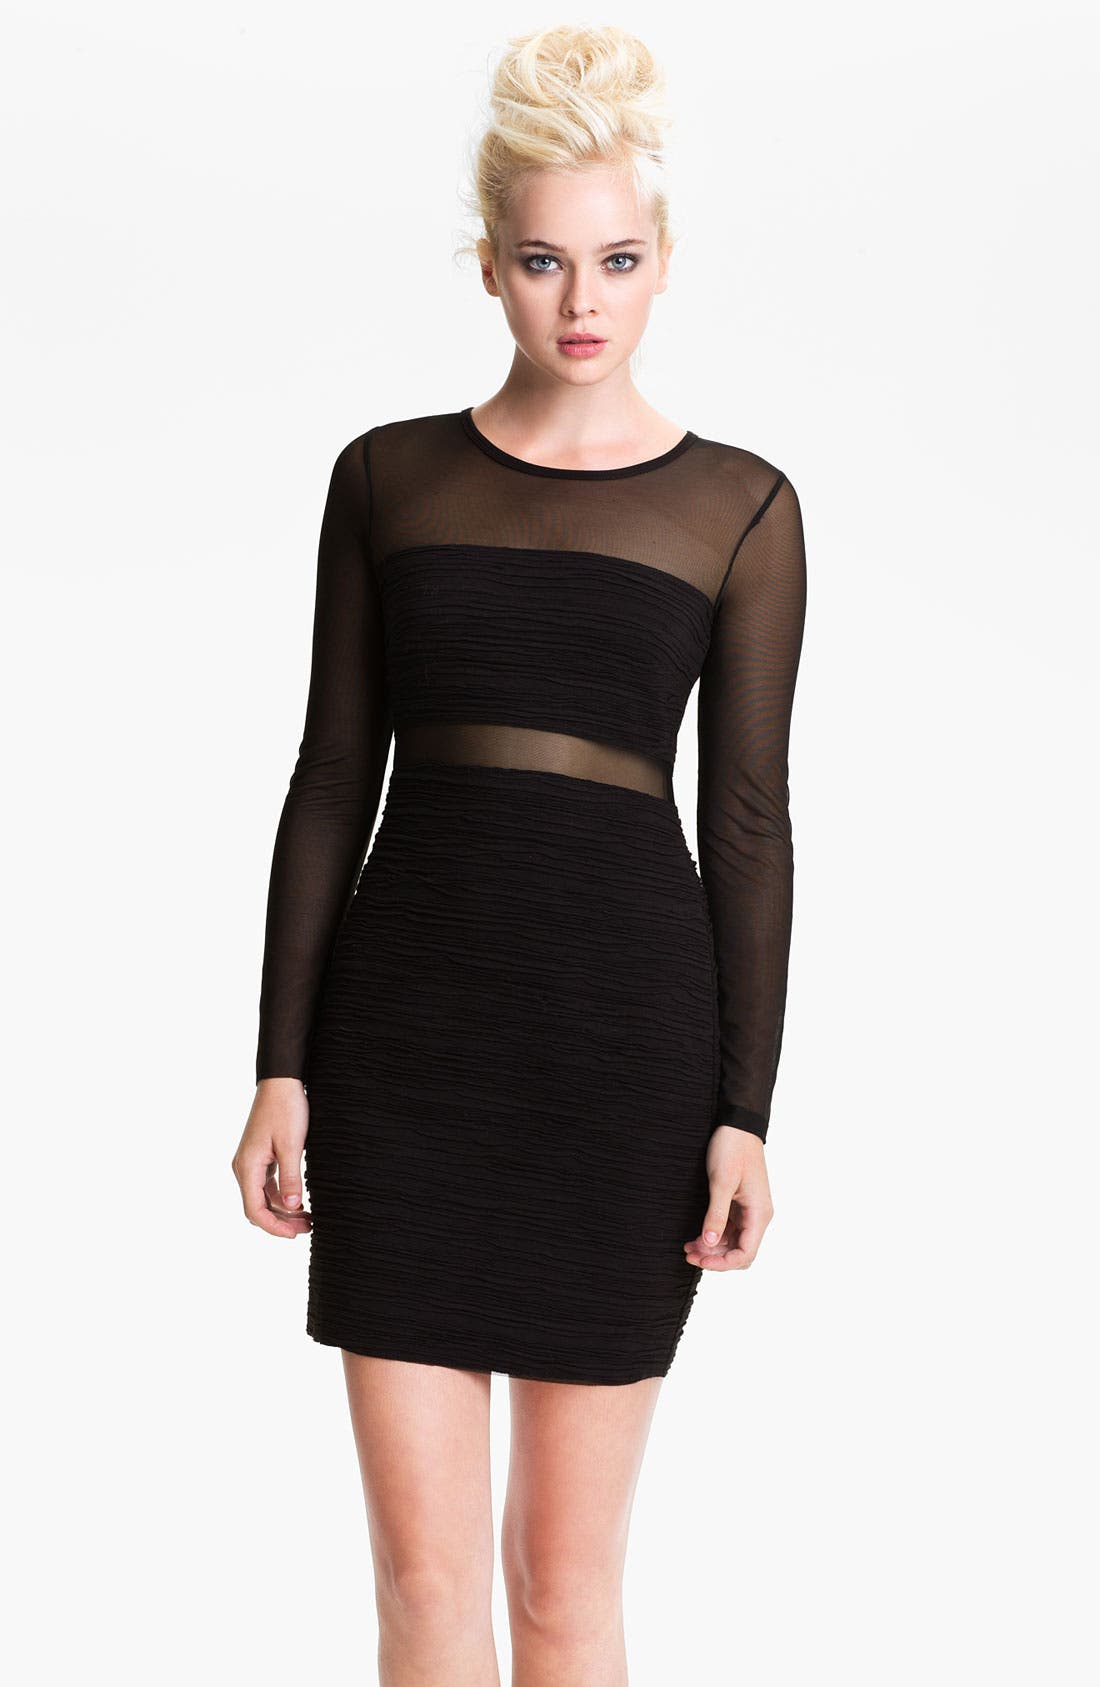 Alternate Image 1 Selected - Bailey 44 'Venom' Mesh Banded Body-Con Dress